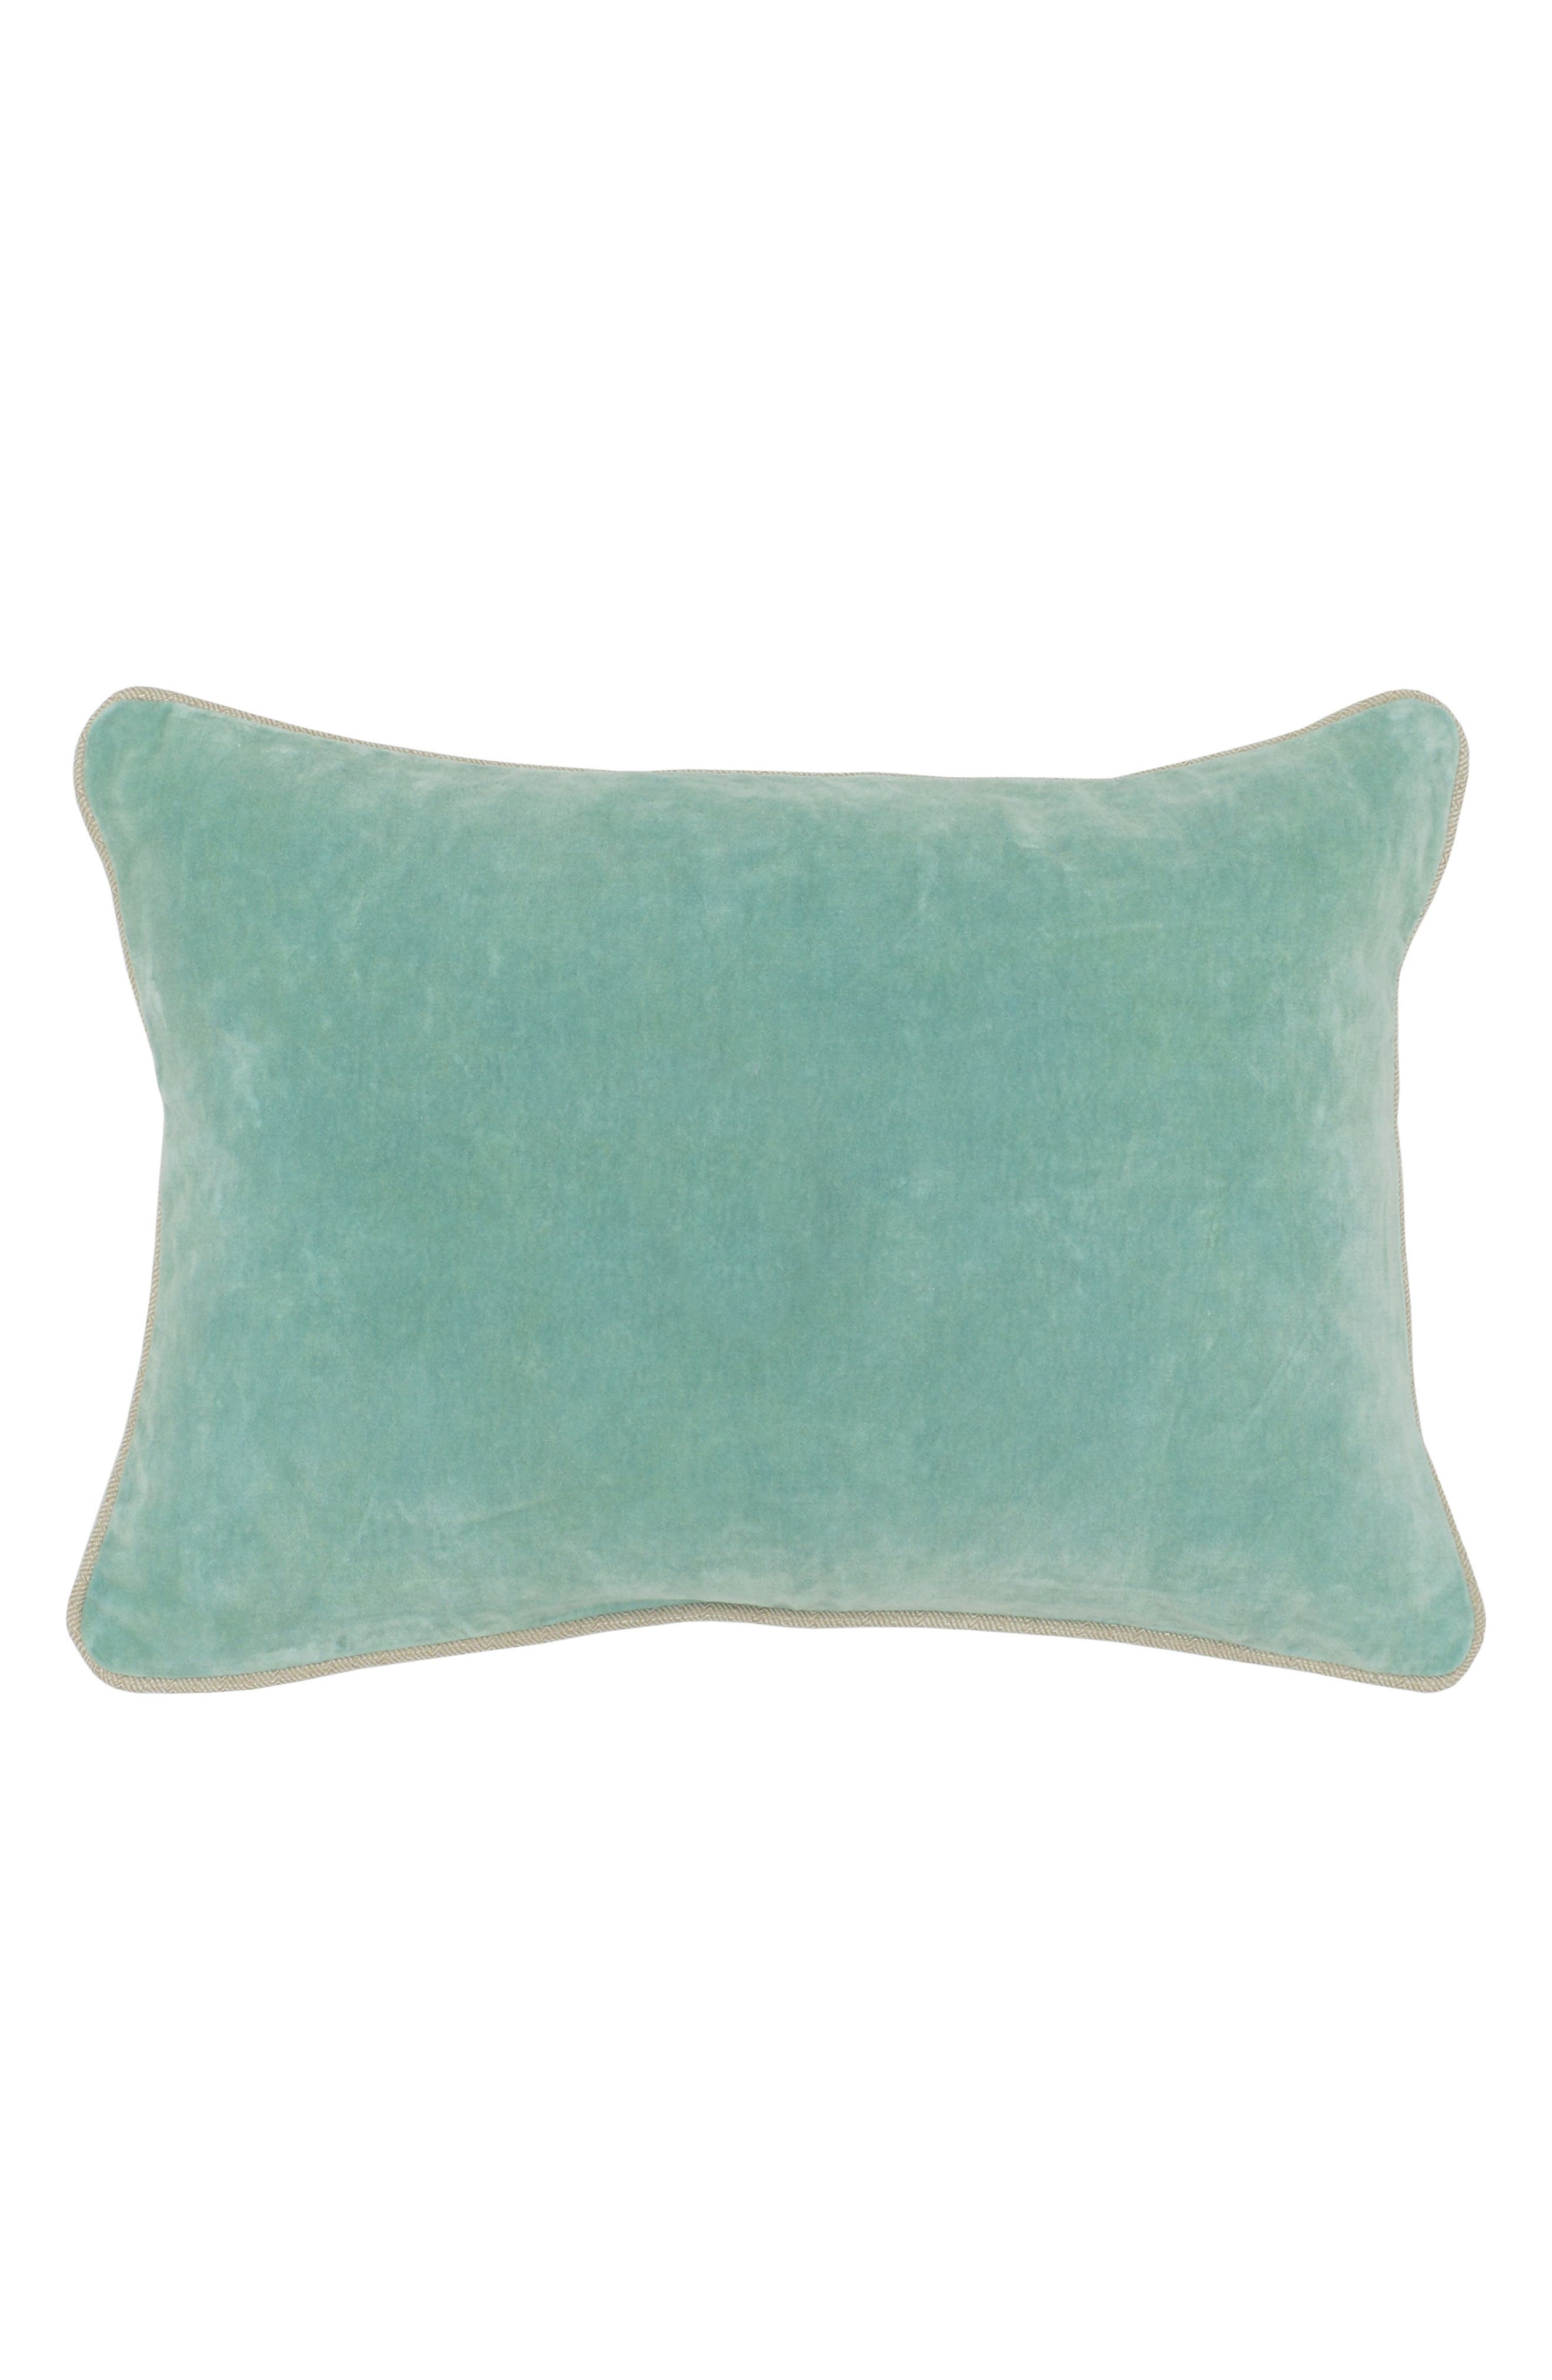 Main Image - Villa Home Collection Heirloom Velvet Accent Pillow